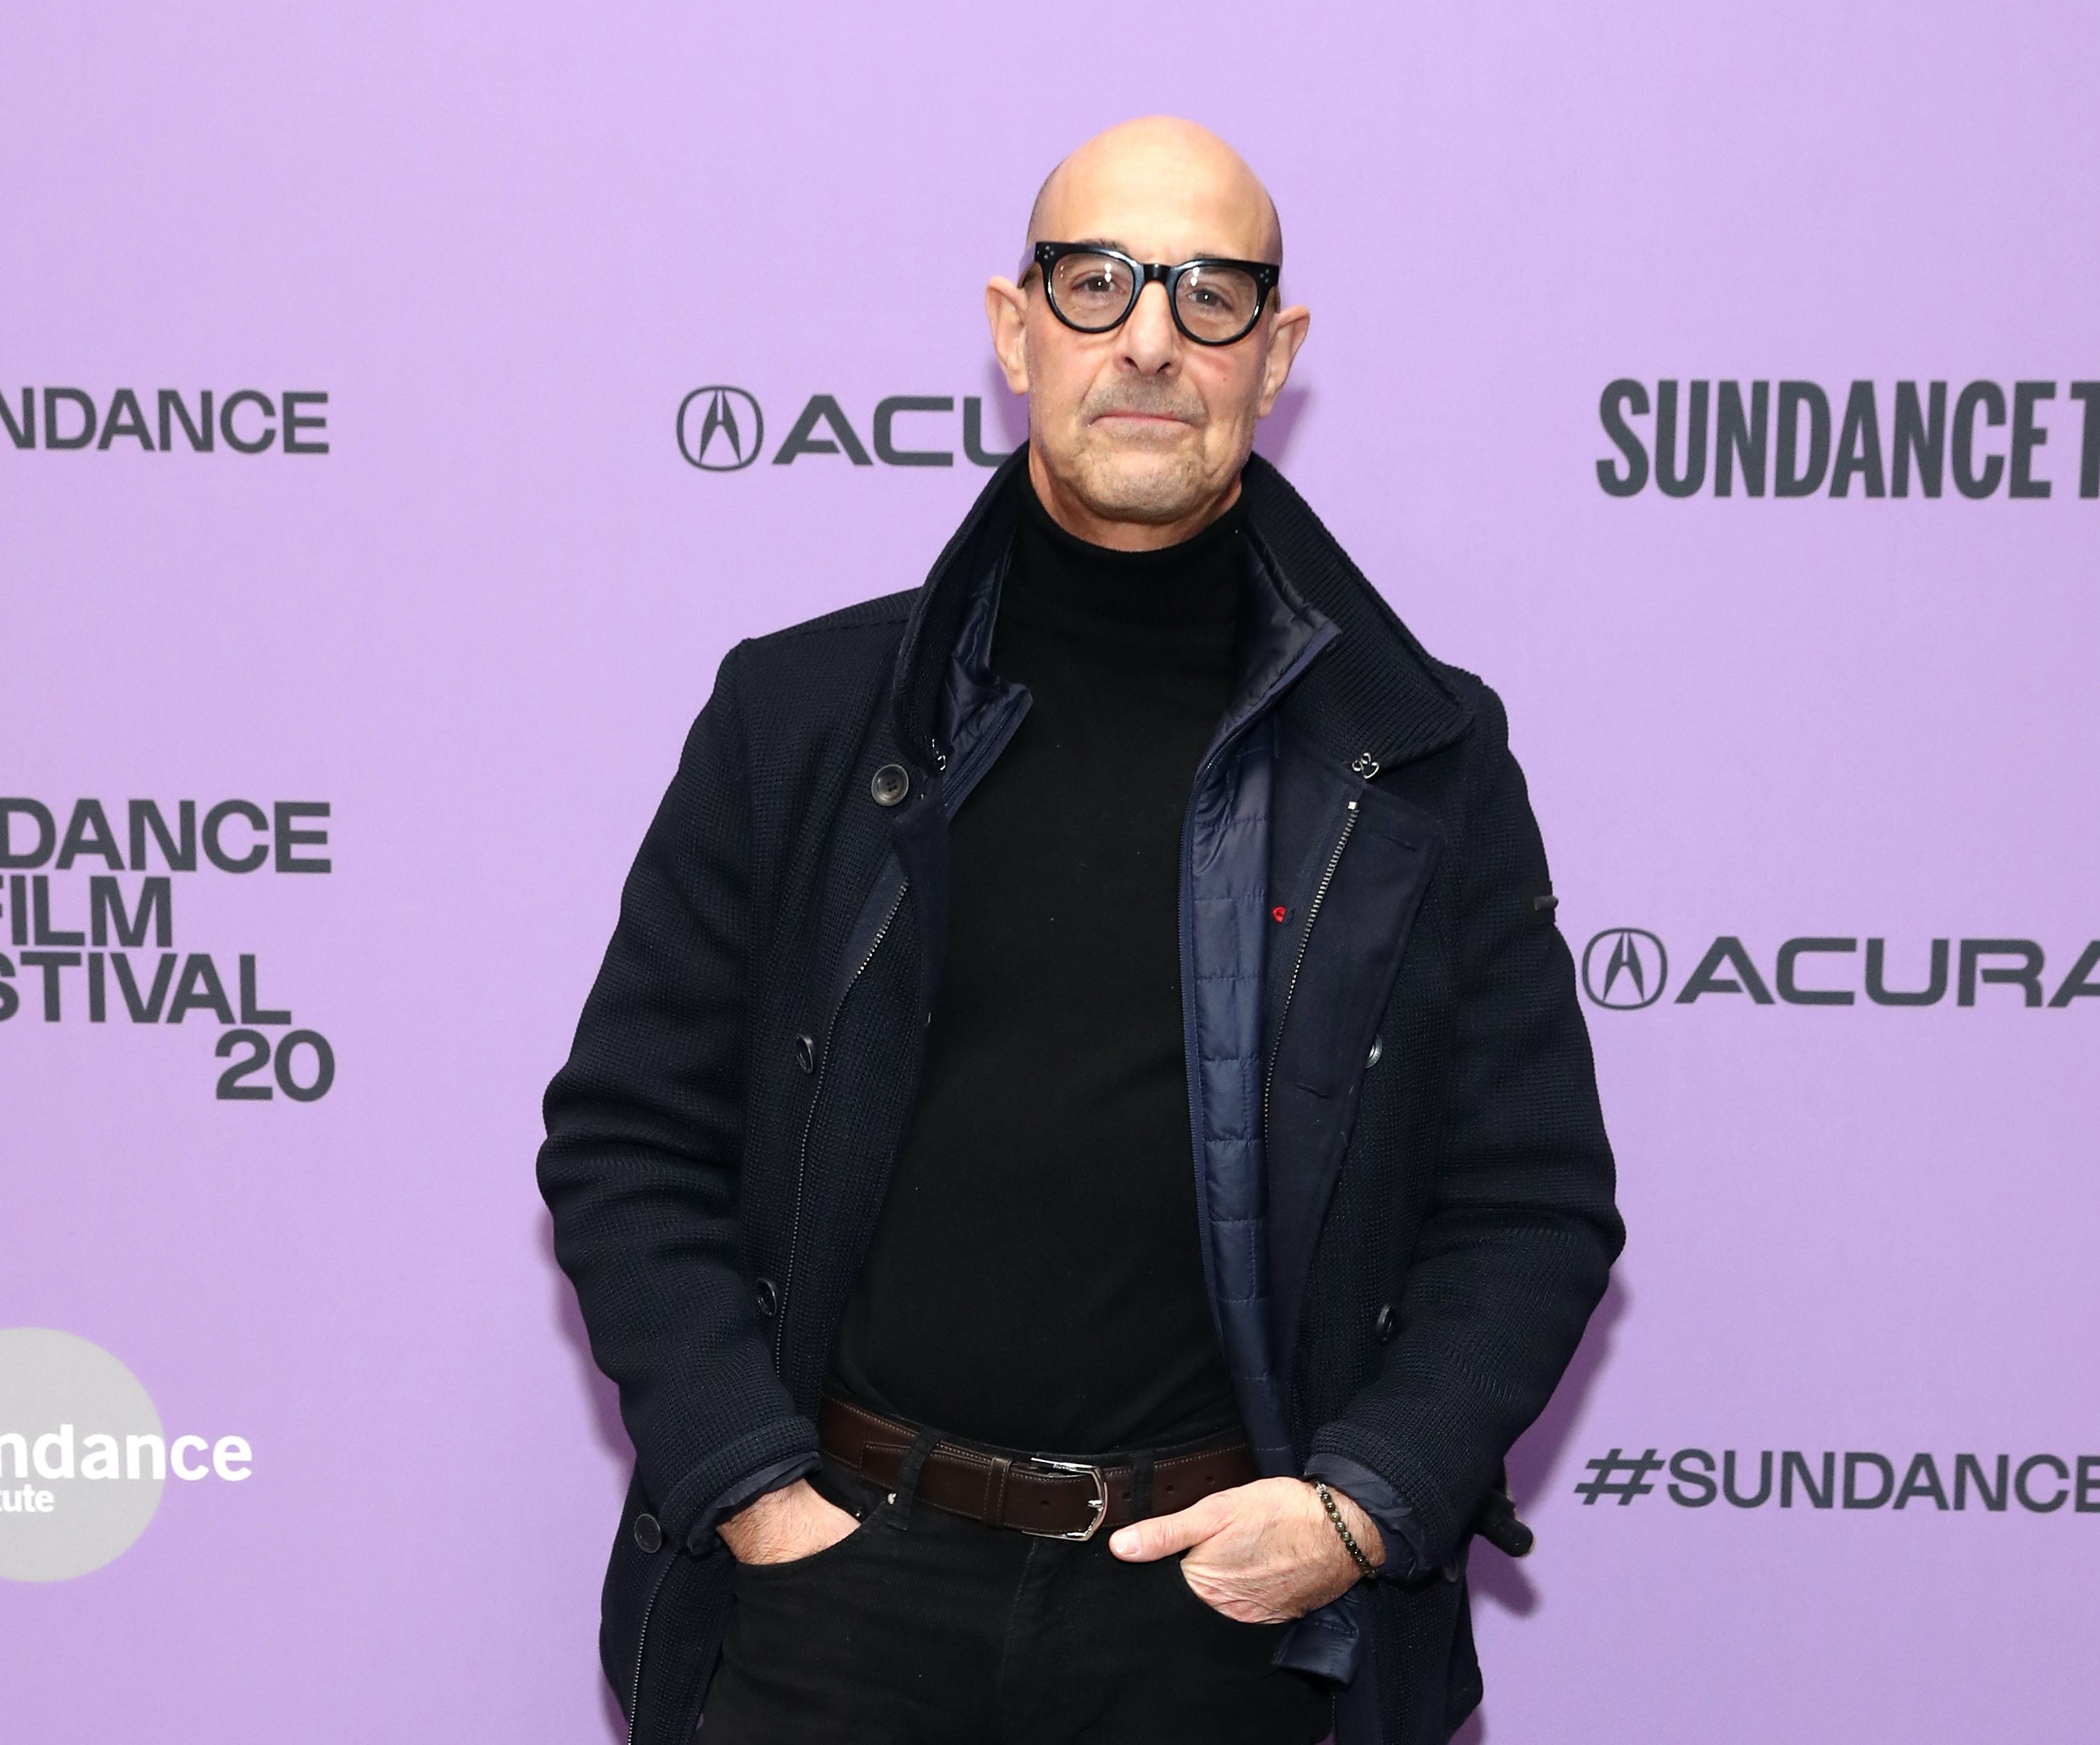 Stanley Tucci flaunts his classy bartending skills making an Old Fashioned cocktail before noon